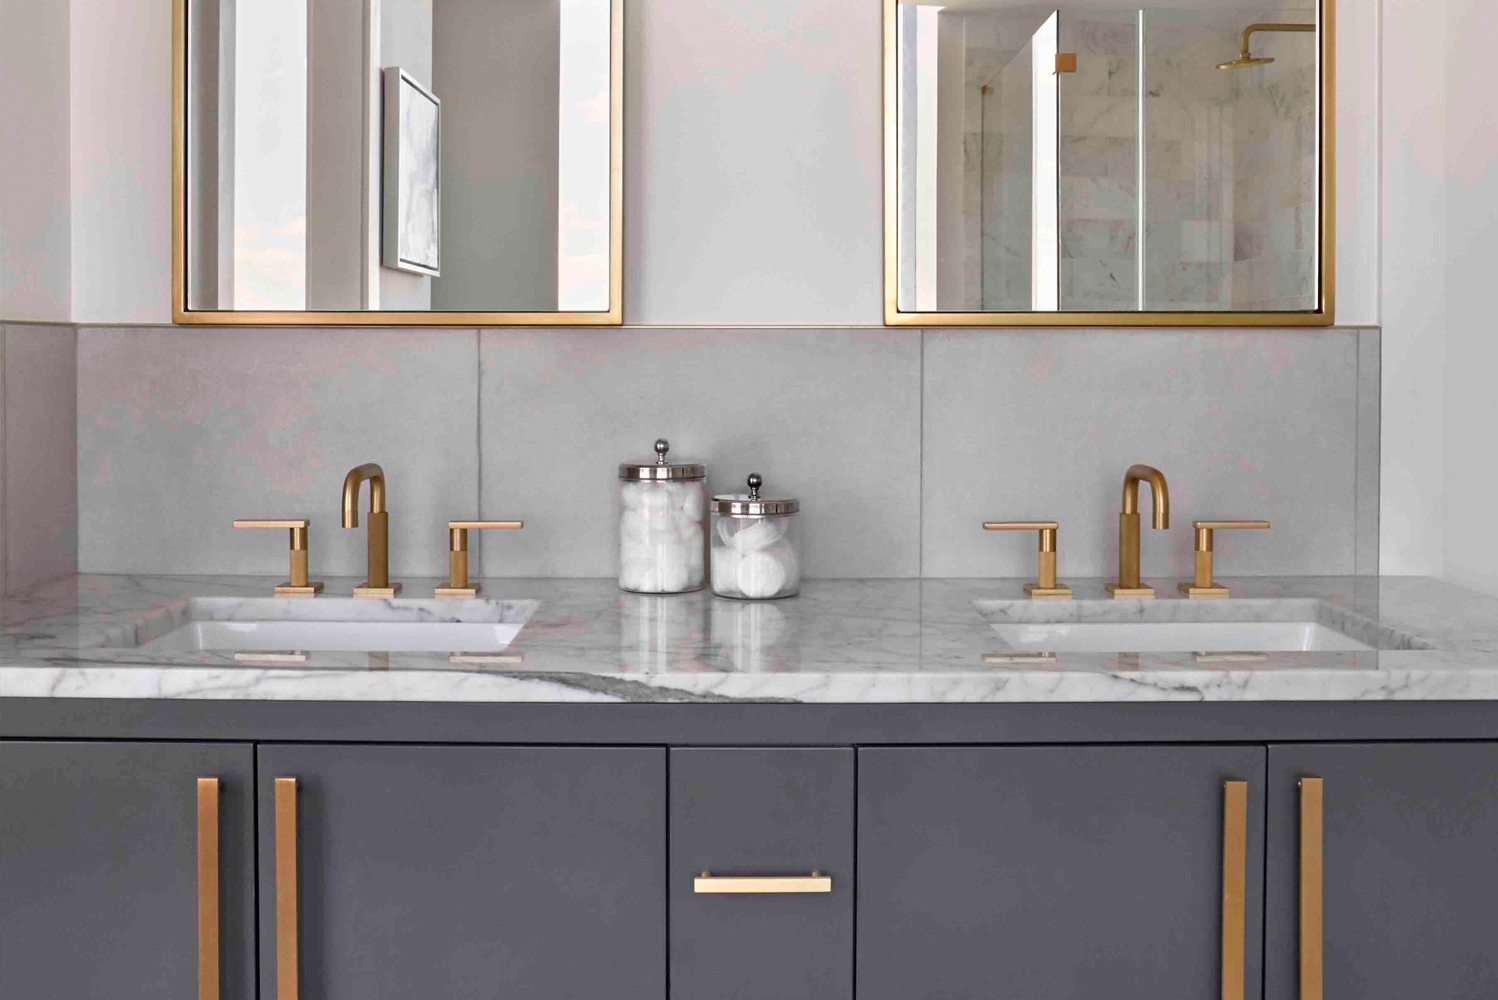 MarkZeff paired up with Watermark Designs to produce Rainey, a collection of kitchen and bath trimming, fixtures and faucets.